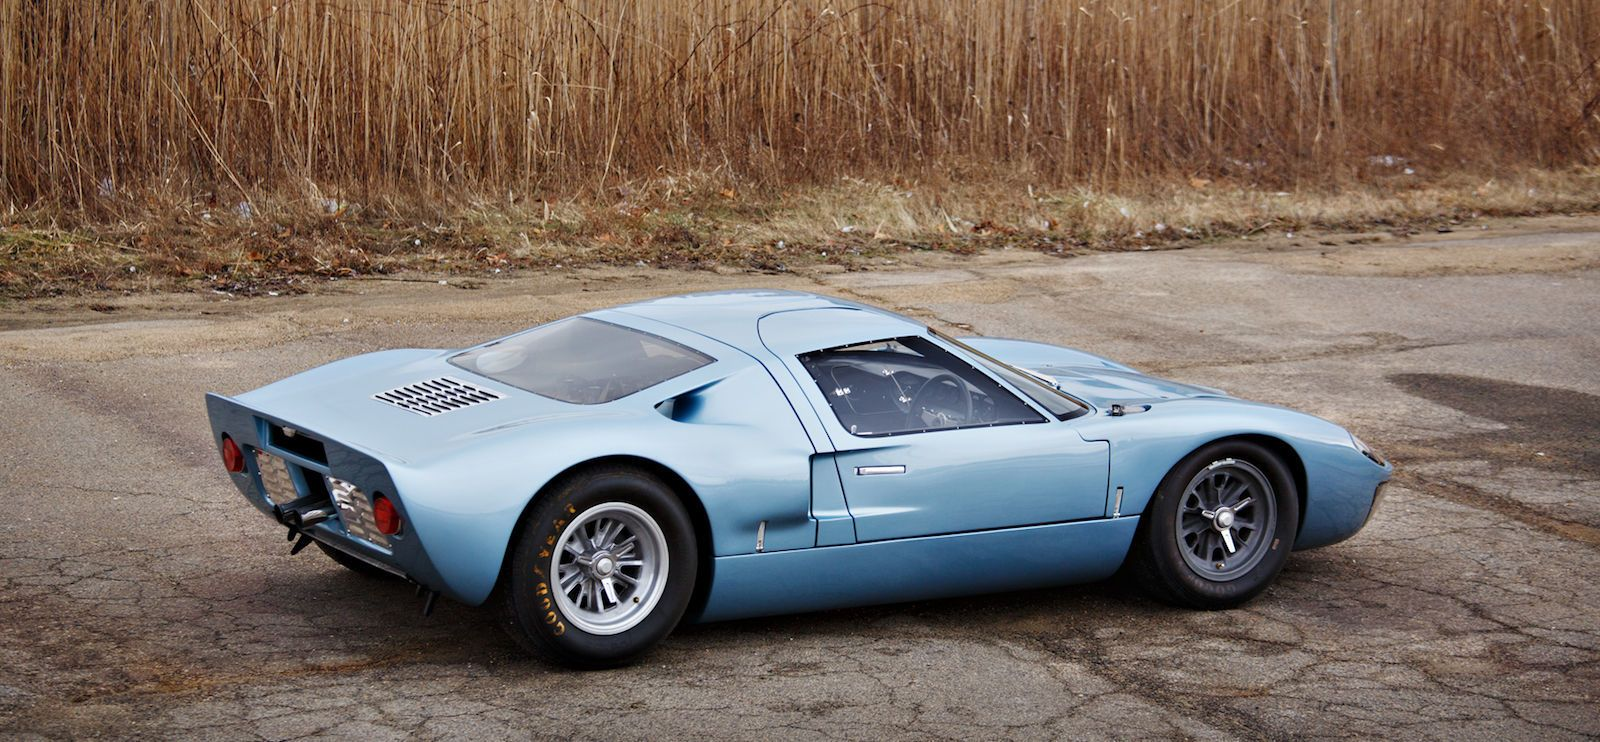 Gooding u0026 Company/Brian Henniker & This Stunning Ford GT40 Road Car Will Be Auctioned Next Month markmcfarlin.com